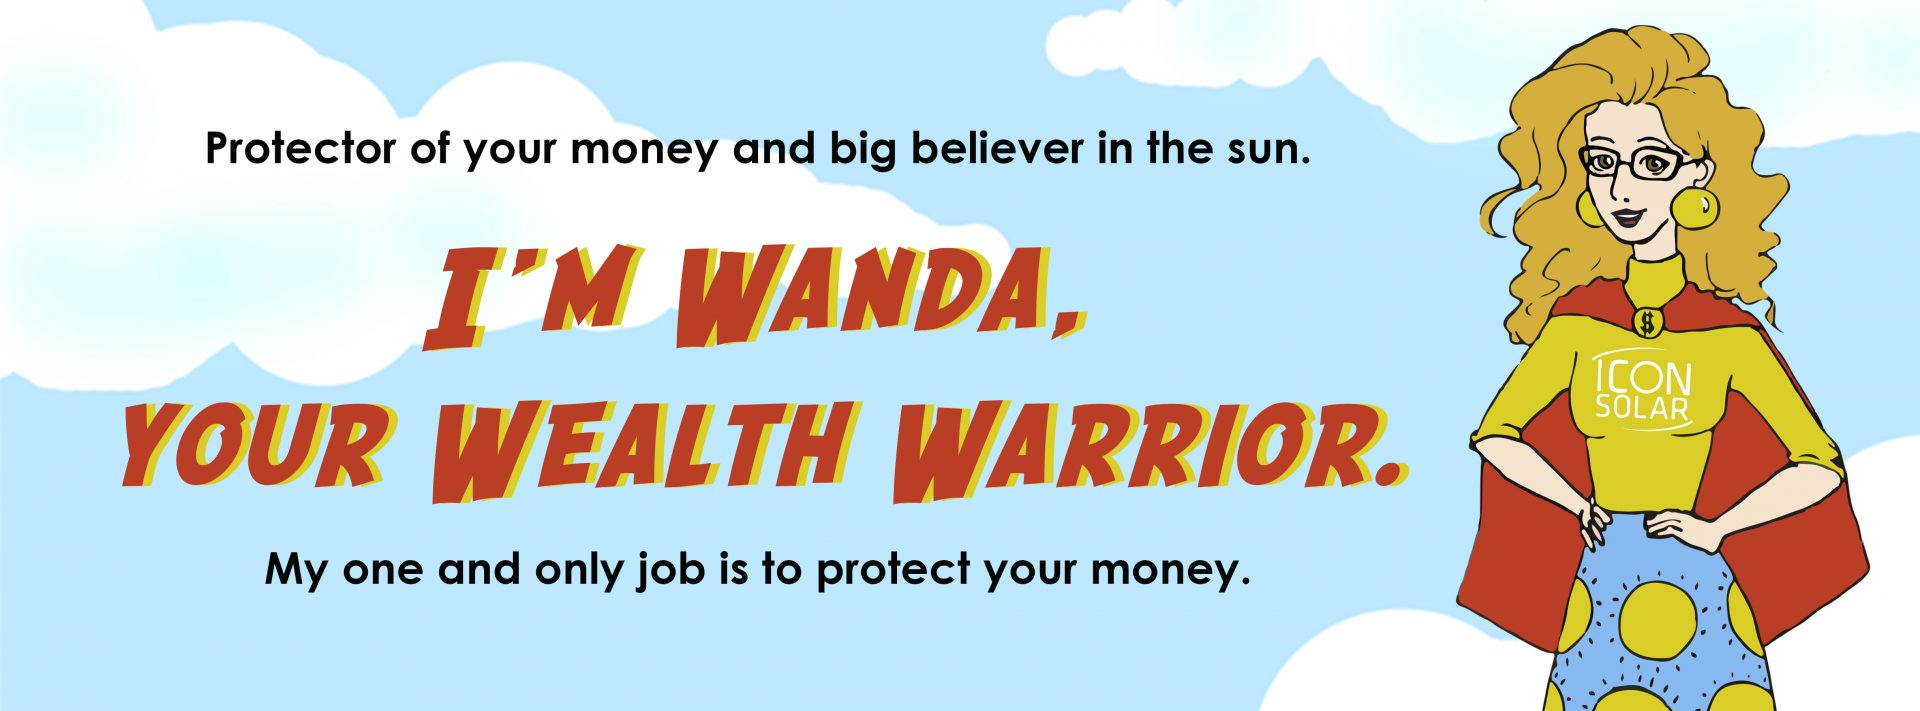 Wanda Wealth Warrior slide